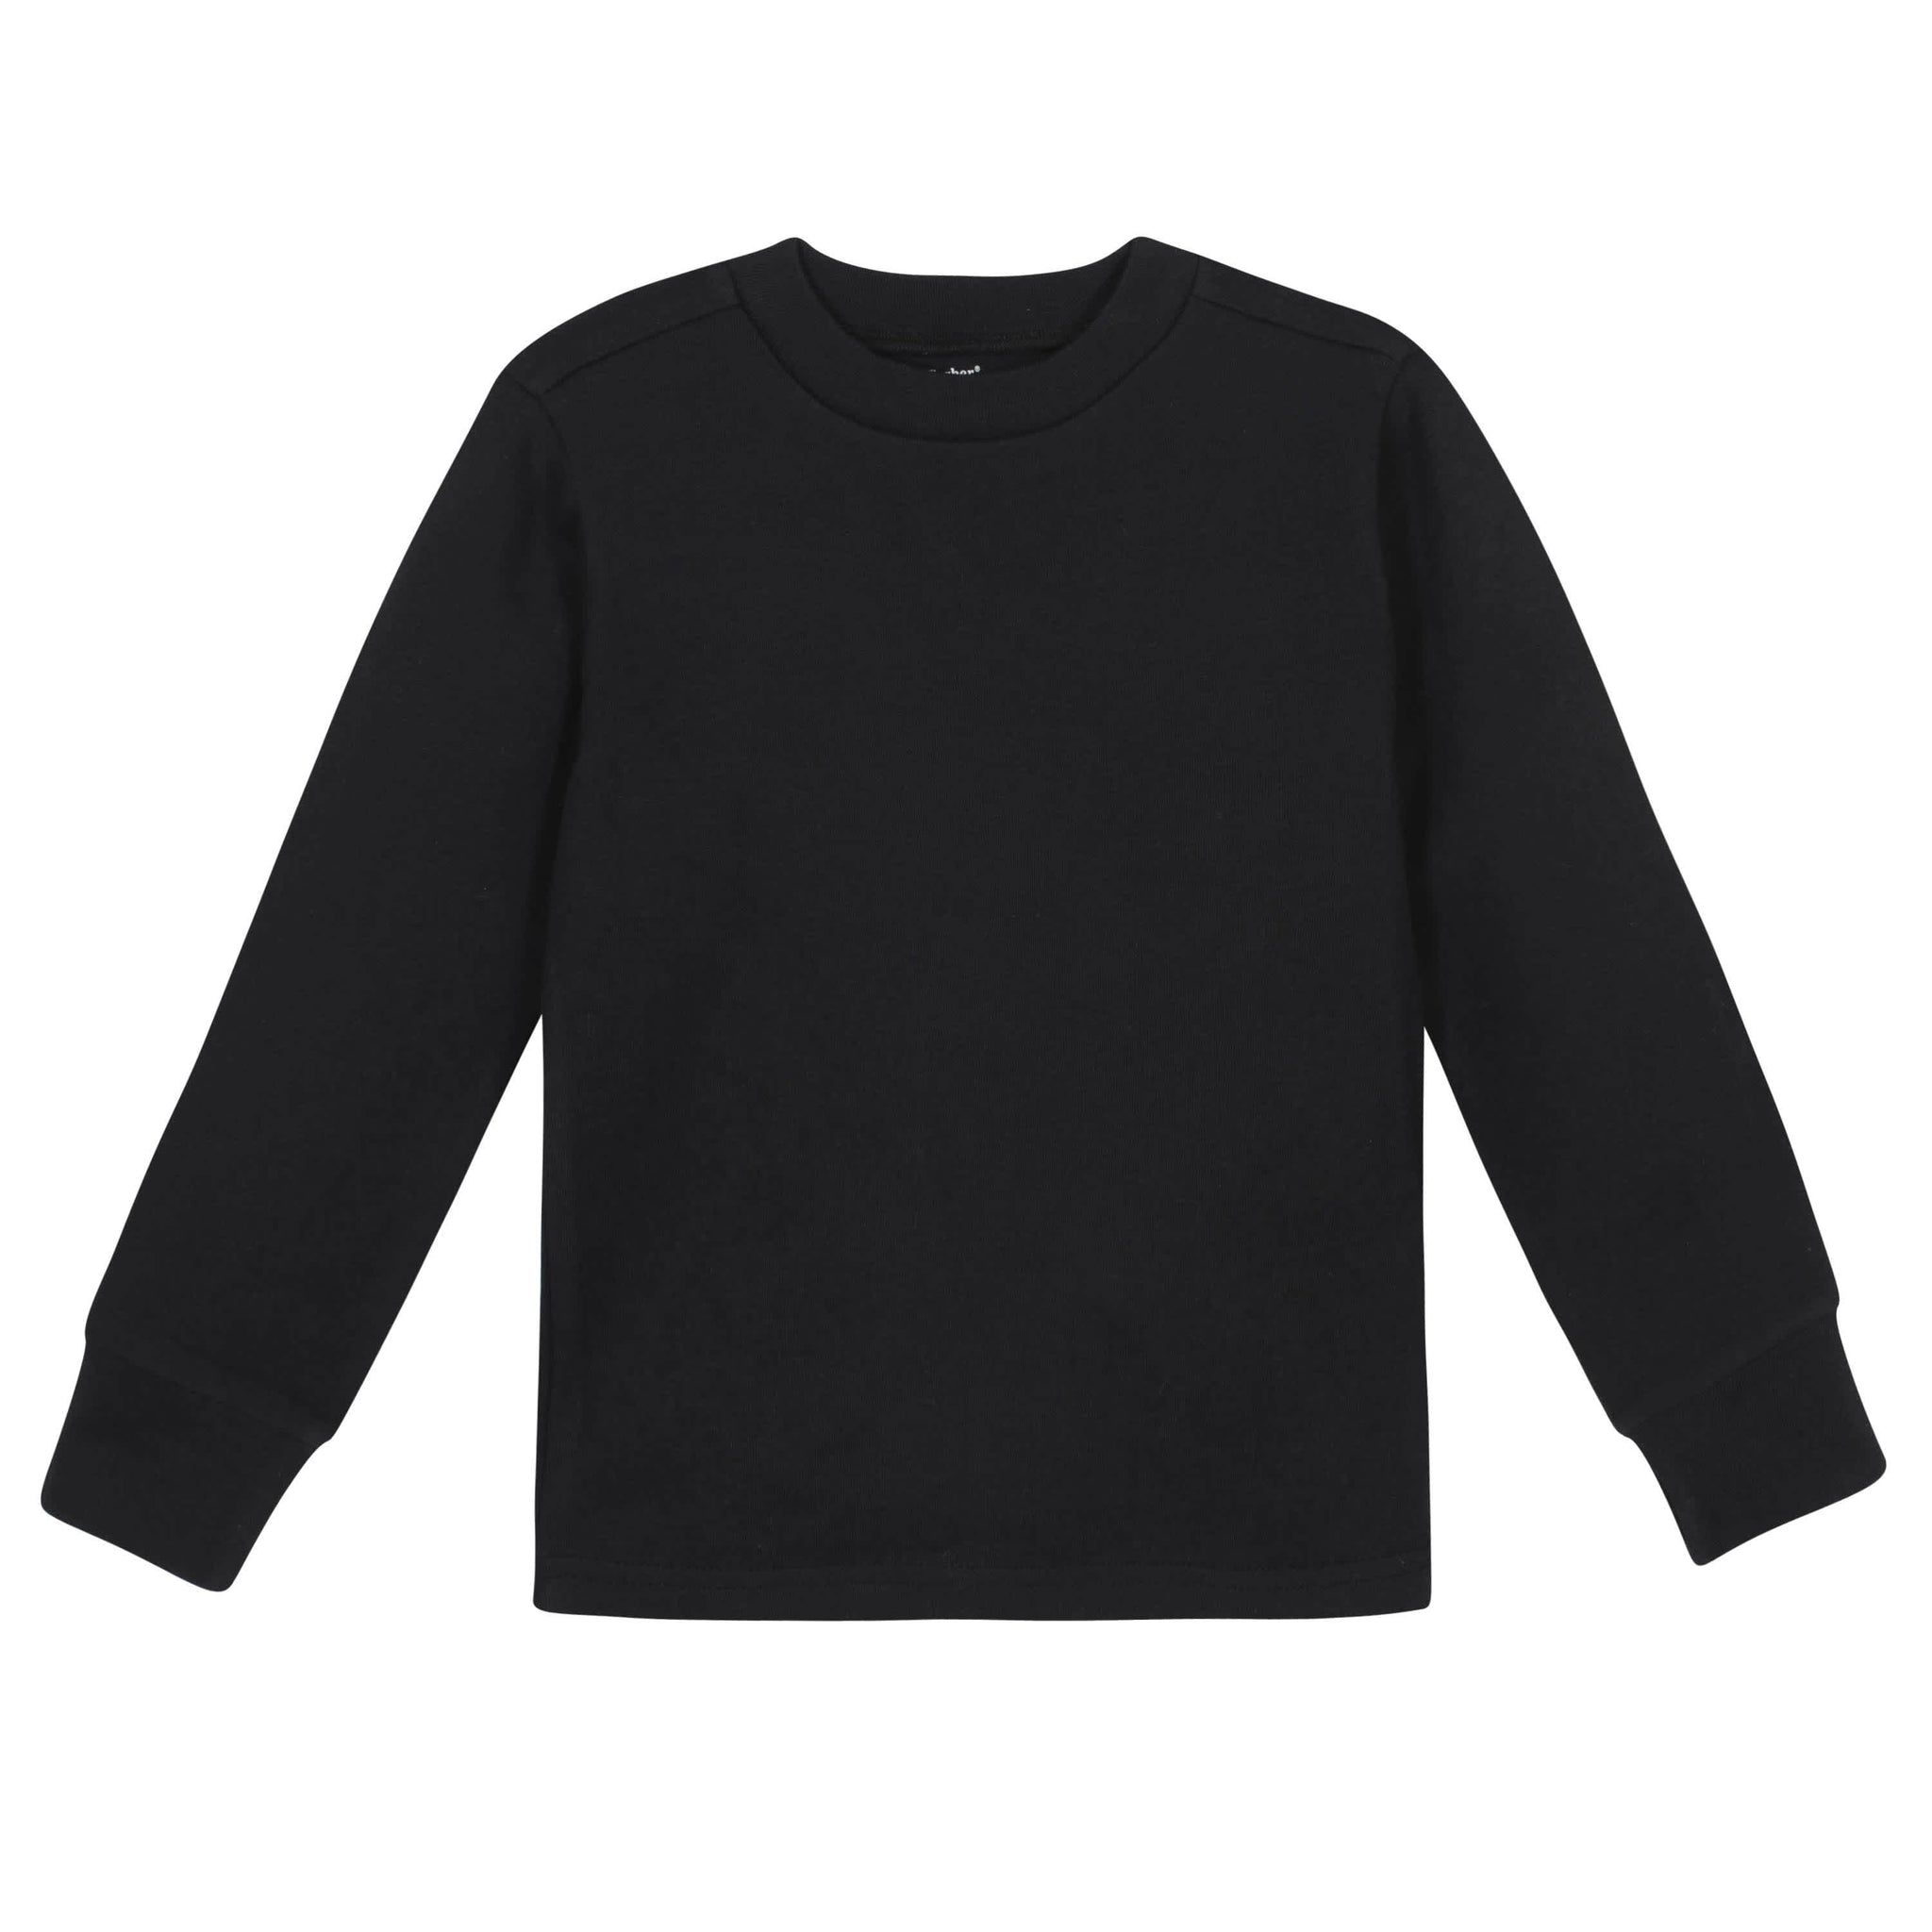 Gerber® Premium Black Long Sleeve Tee Shirt - 10 Colors Available